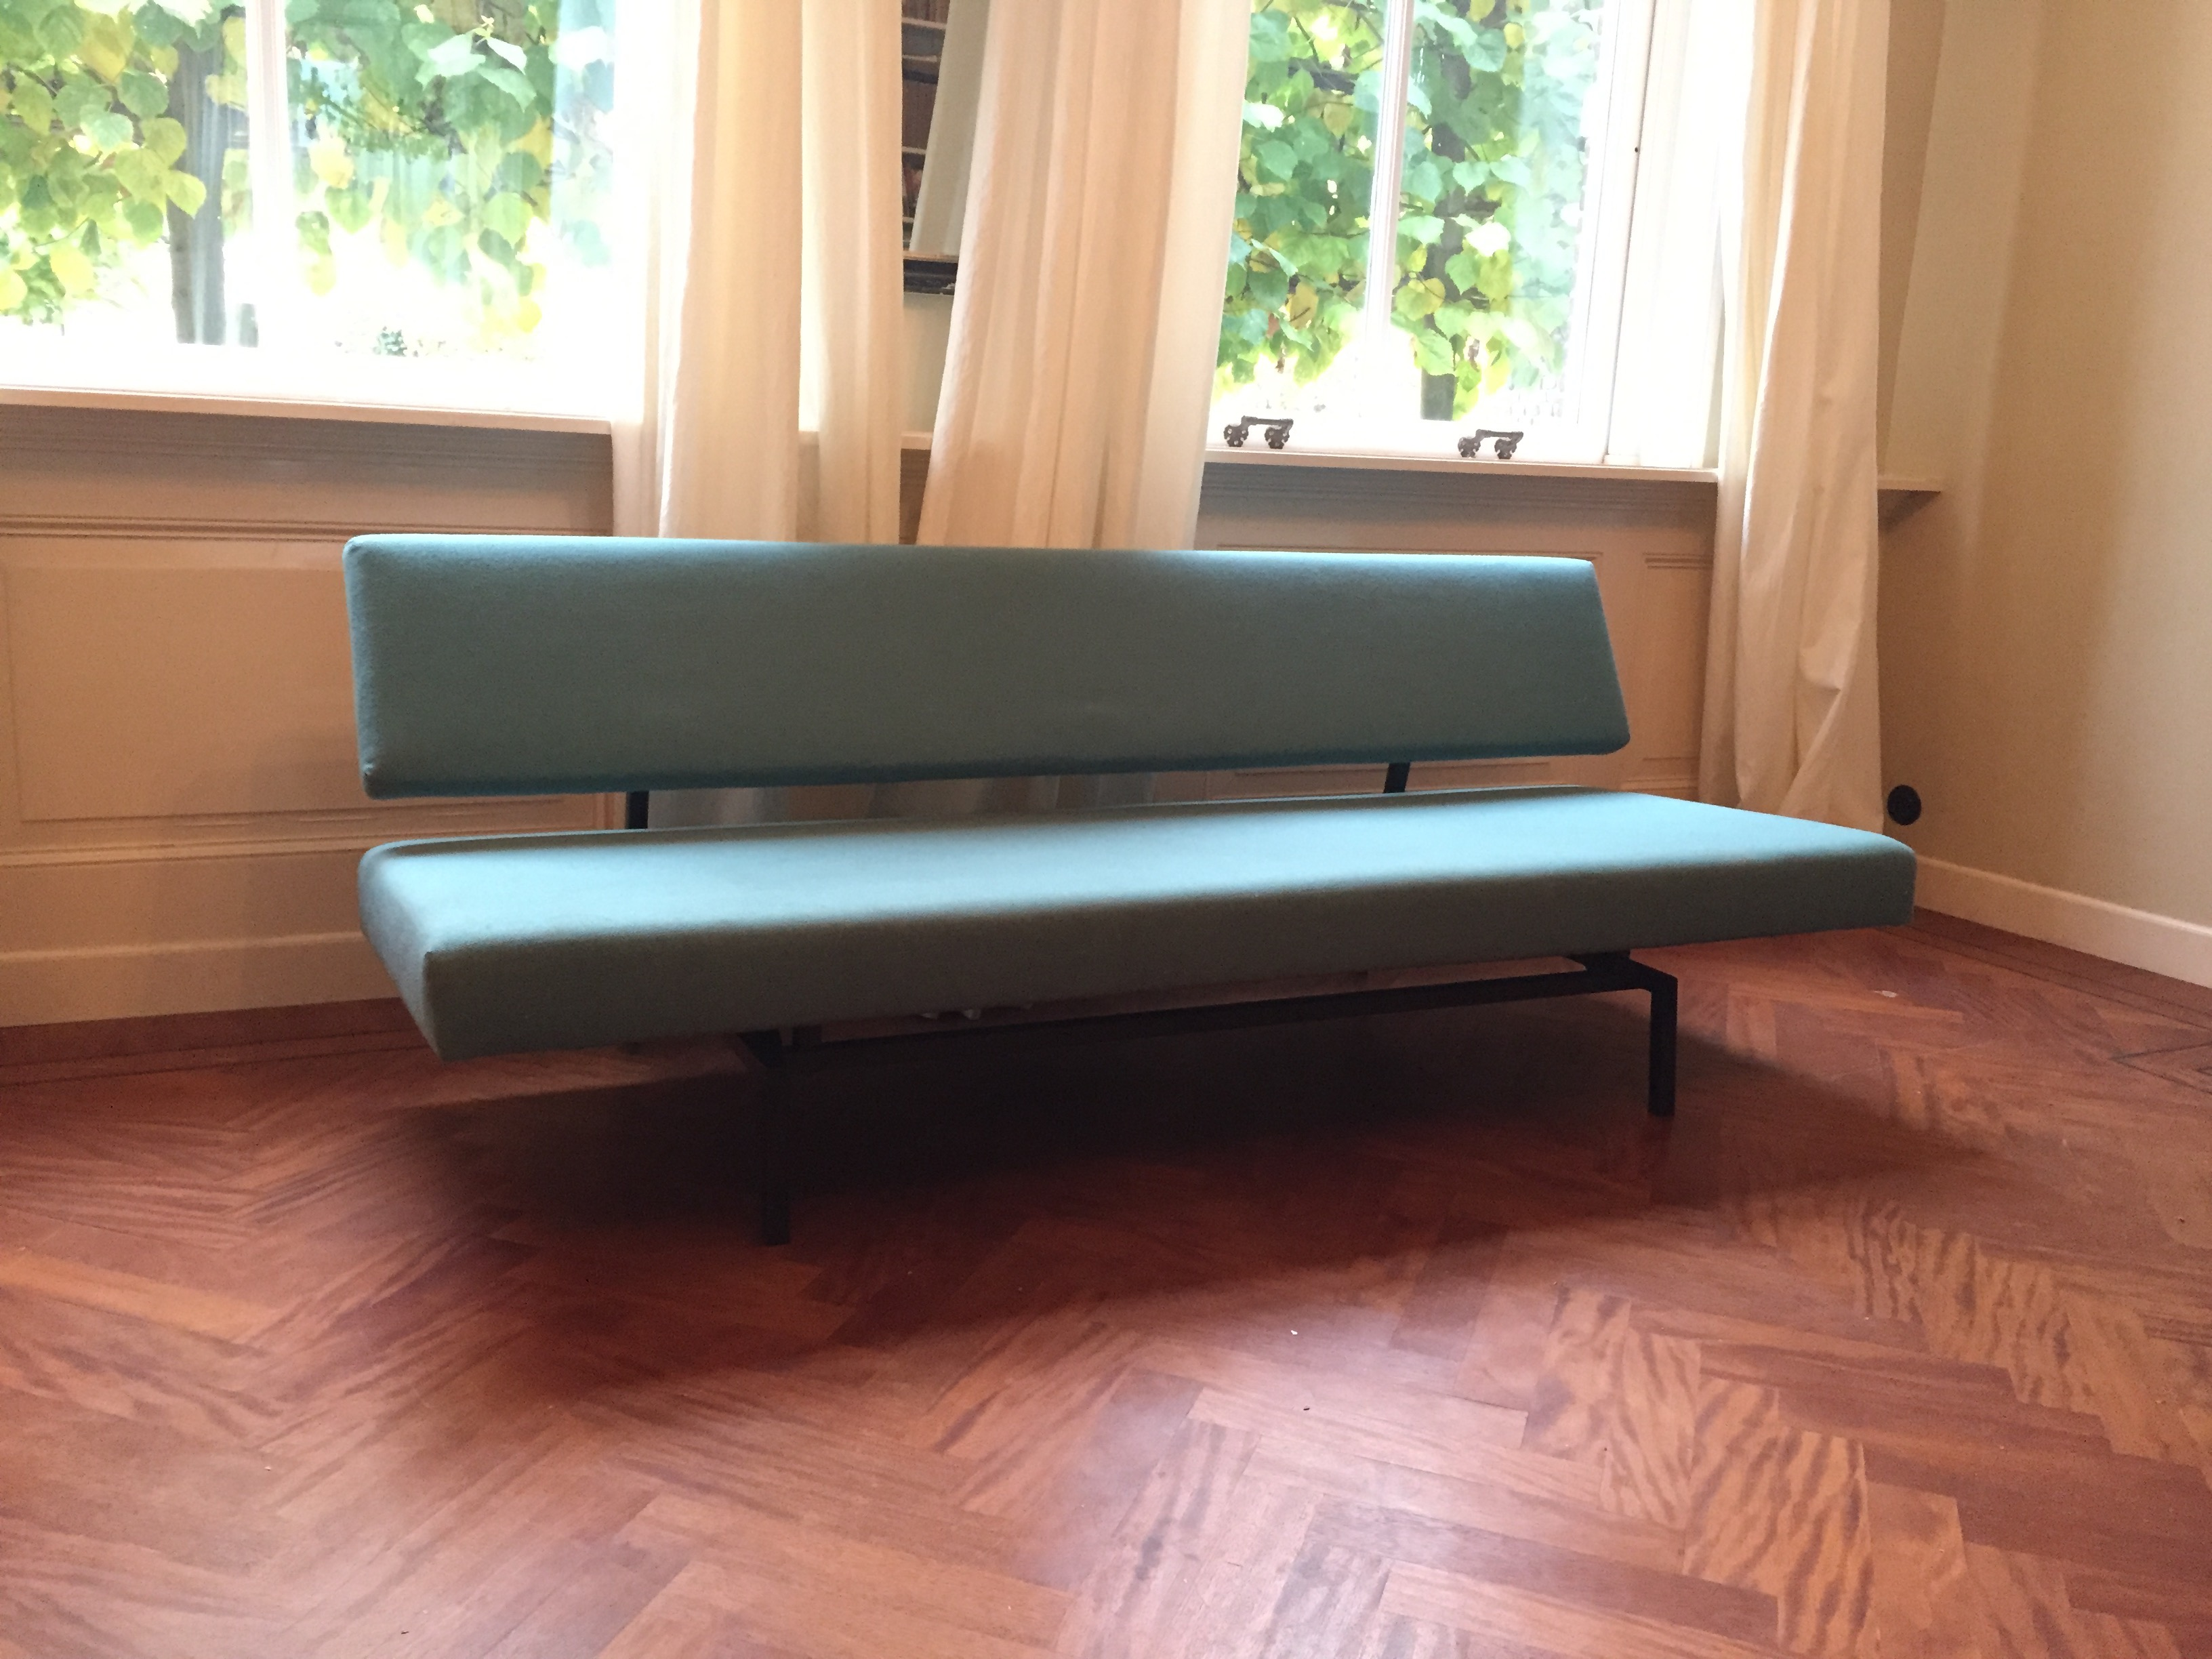 SOLD - Spectrum (Sleeping) Sofa. Designed by Martin Visser in 1960 - SOLD